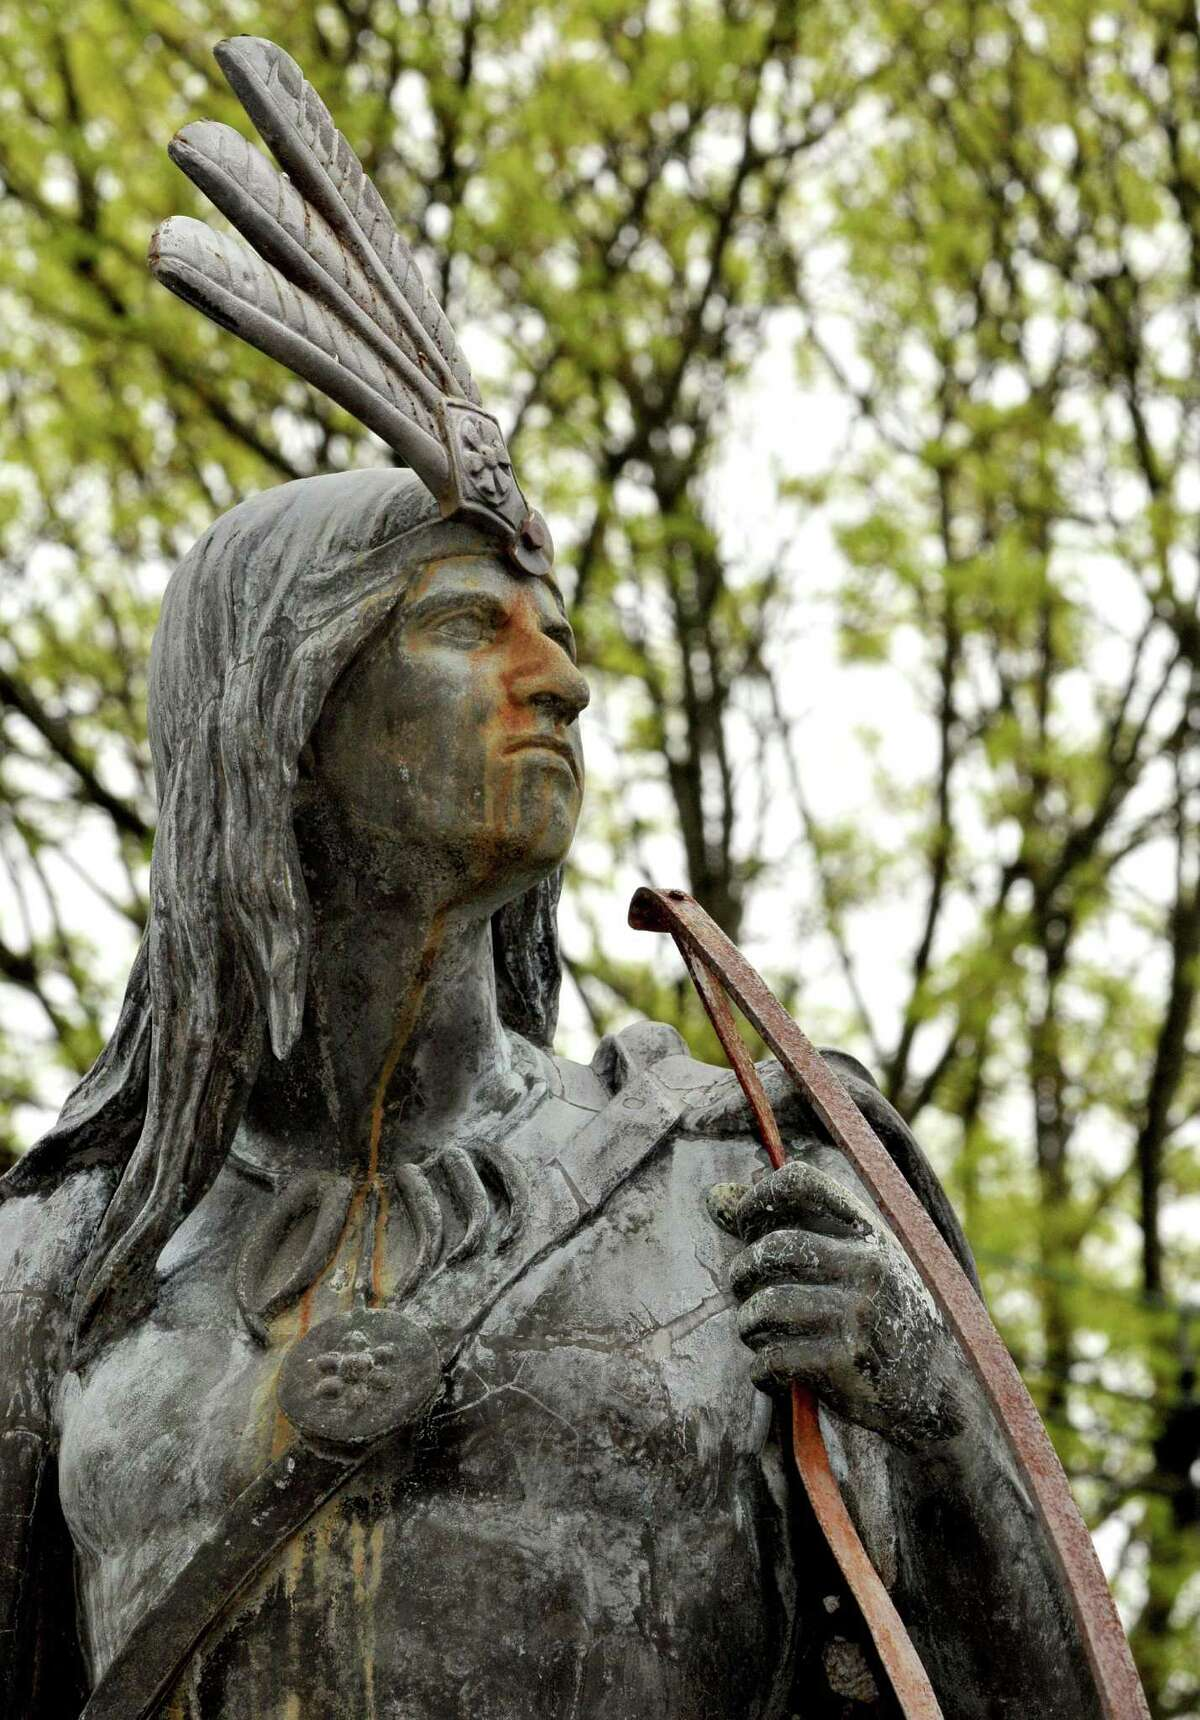 Lawrence the Indian, the iconic 125-year-old statute that sits in the heart of the Stockade, was removed from his pedestal in Schenectady N.Y. Wednesday May 2, 2012. The statue, which has stood at the junction of North Ferry, Front and Green Streets since 1887, is in need of restoration work. Lawrence was named after a Mohawk who befriended rearly settlers. (Michael P. Farrell/Times Union)